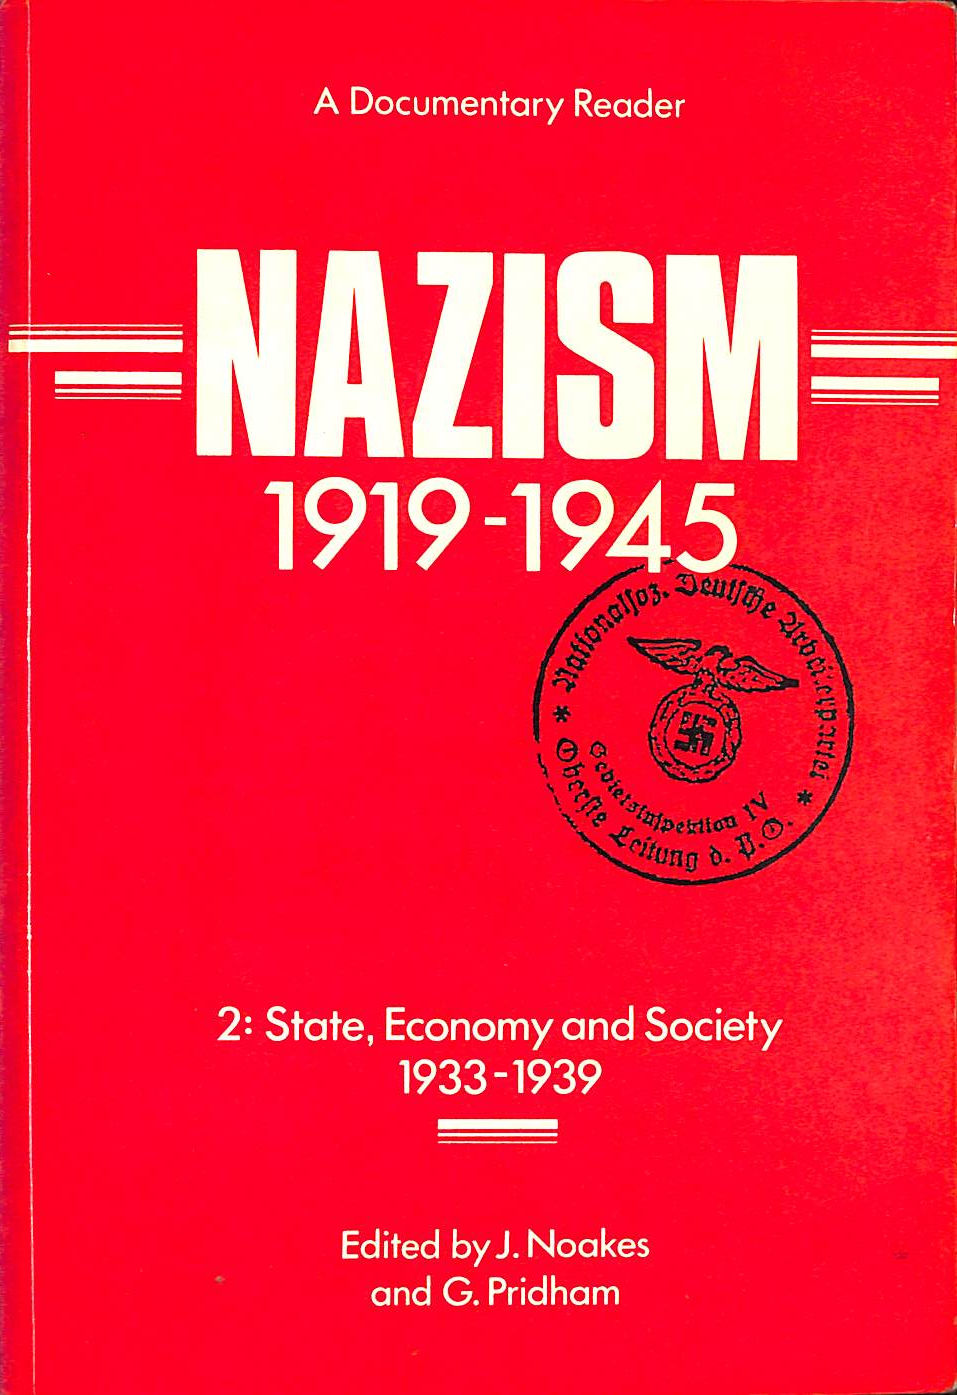 Image for Nazism 1919-1945, 2: State, Economy And Society, 1933-39 - A Documentary Reader